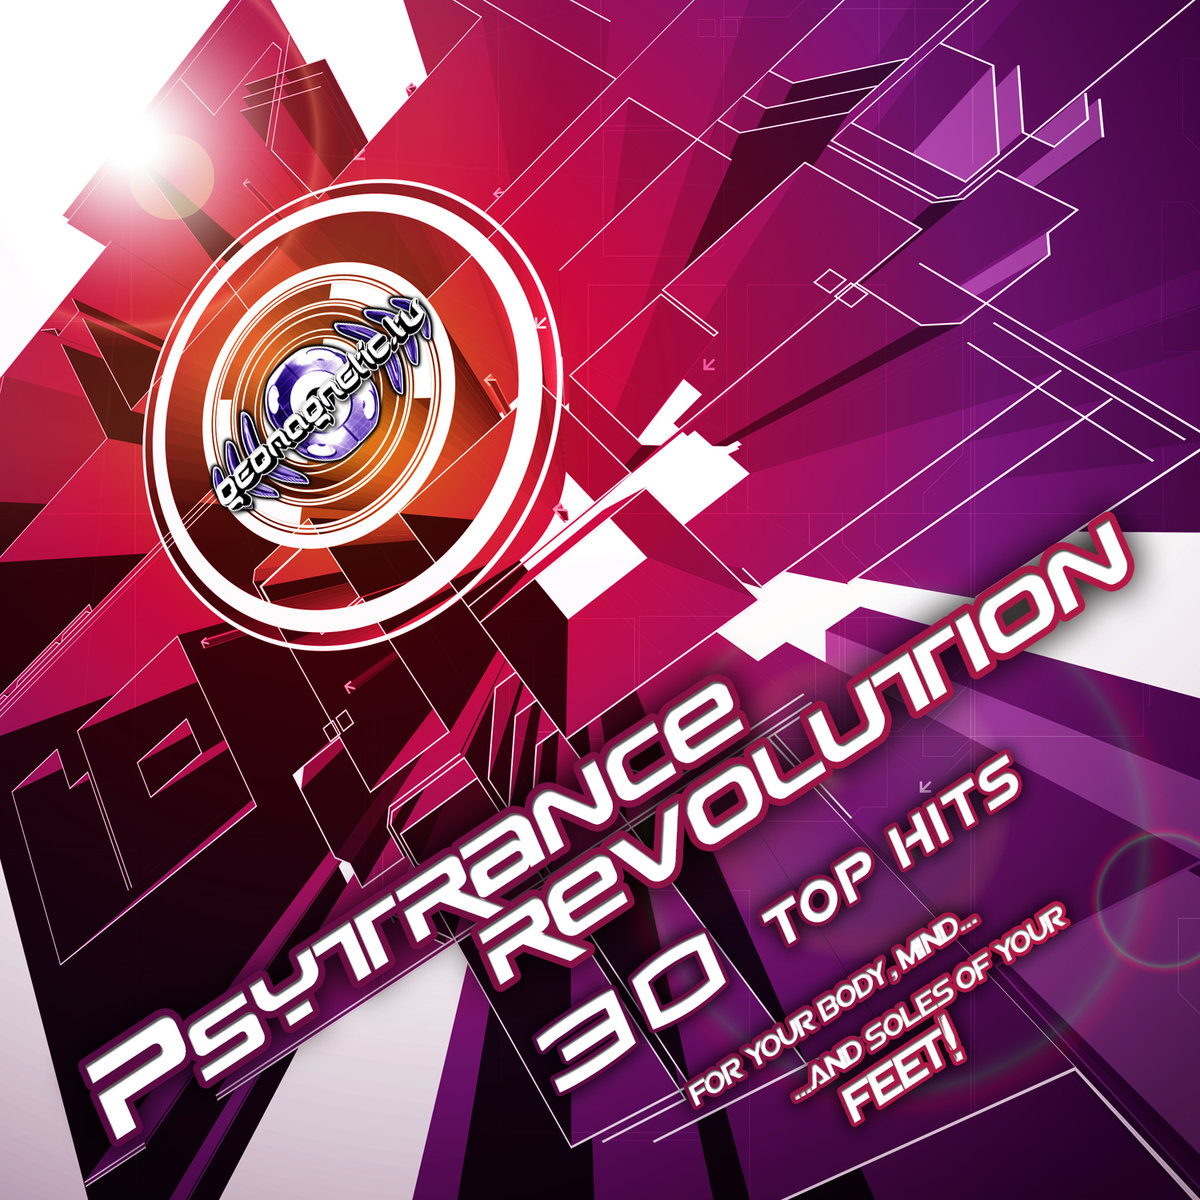 Passion Project - Psychedelic Revolution @ 'Various Artists - Psytrance Revolution (30 Top Hits)' album (electronic, goa)